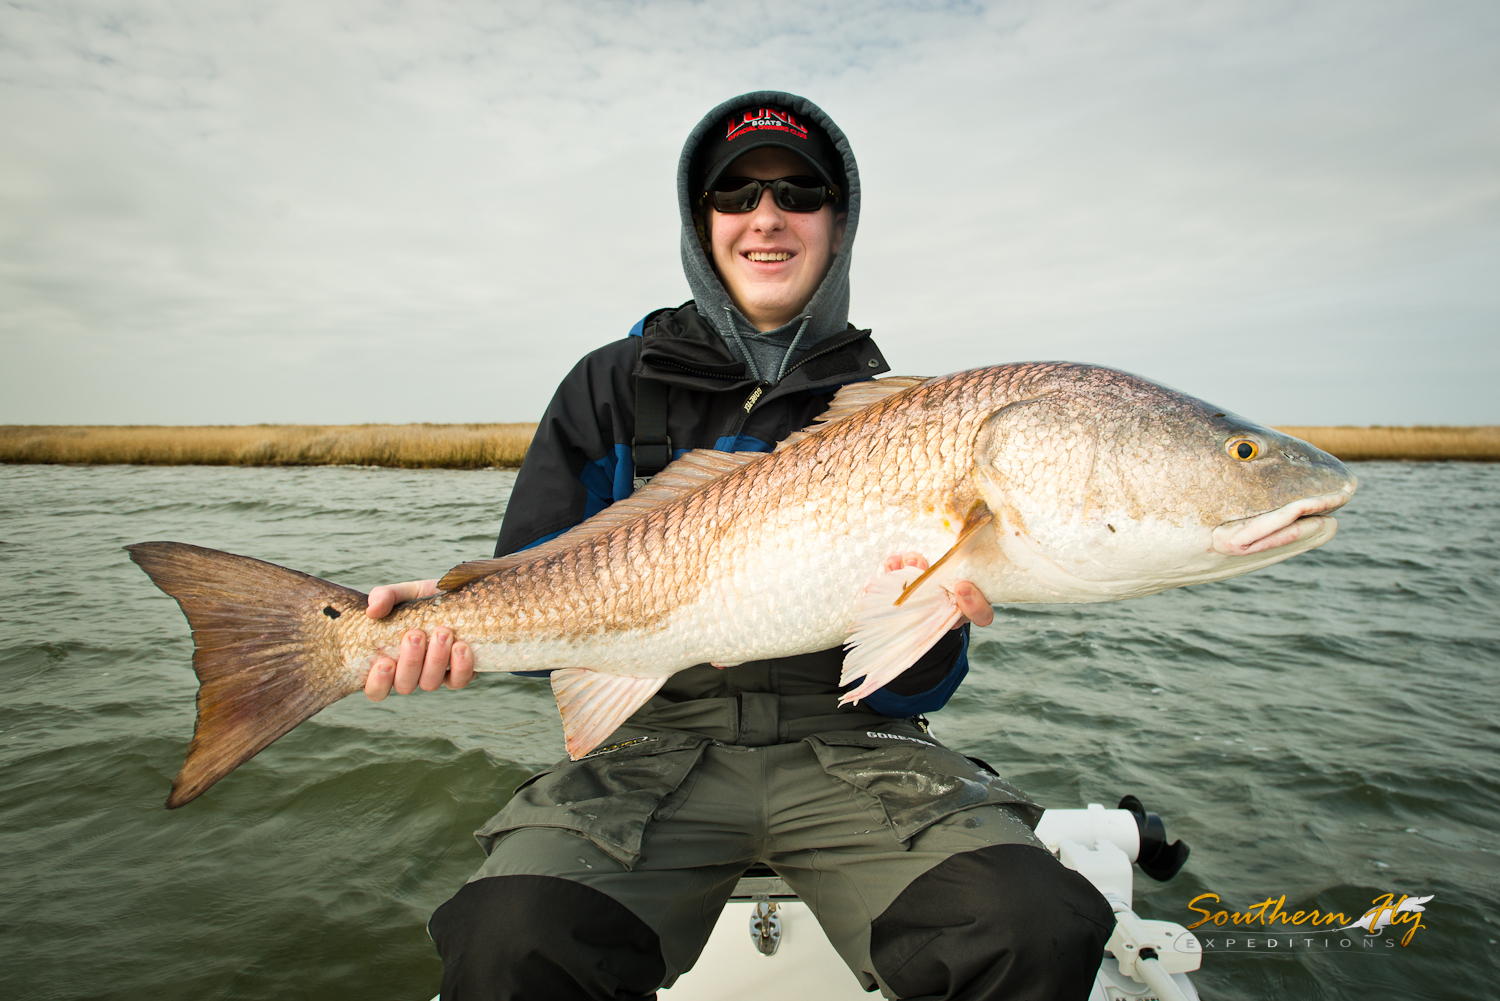 Redfish guides new orleans louisiana iwth southern fly expeditions